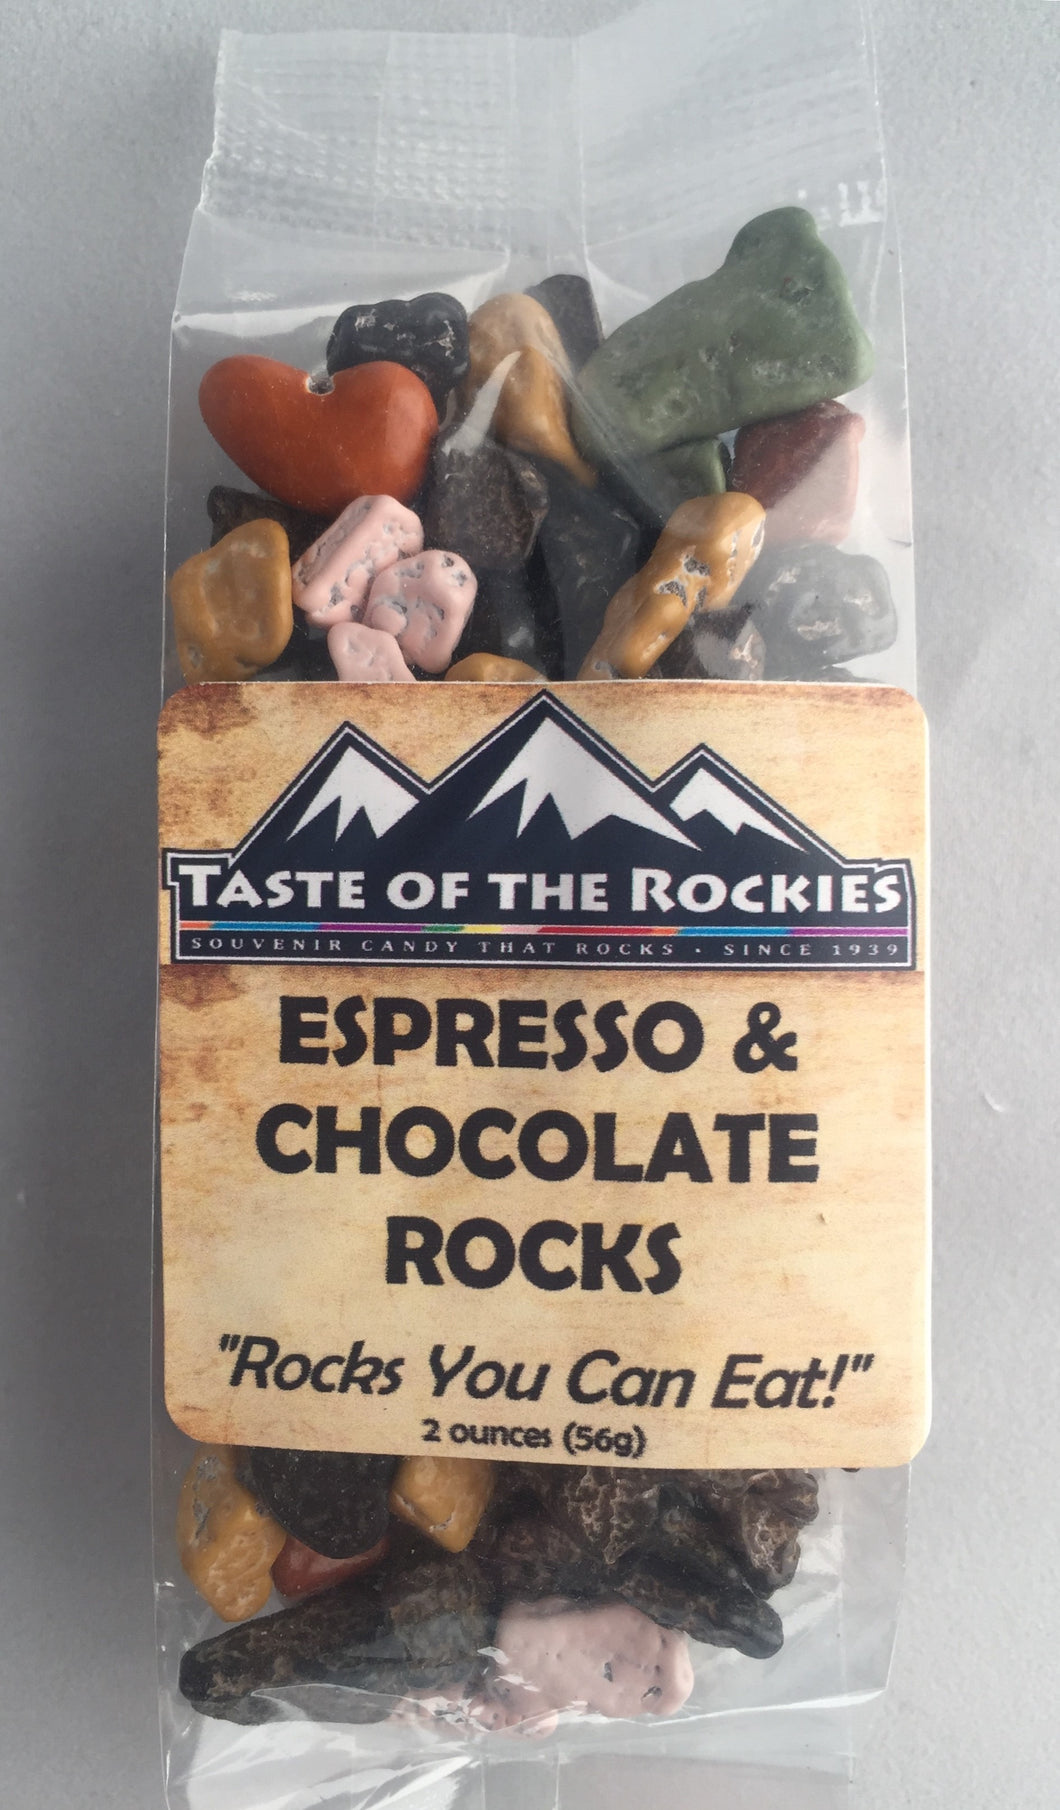 Espresso and River Rock Chocolate - Taste Of The Rockies